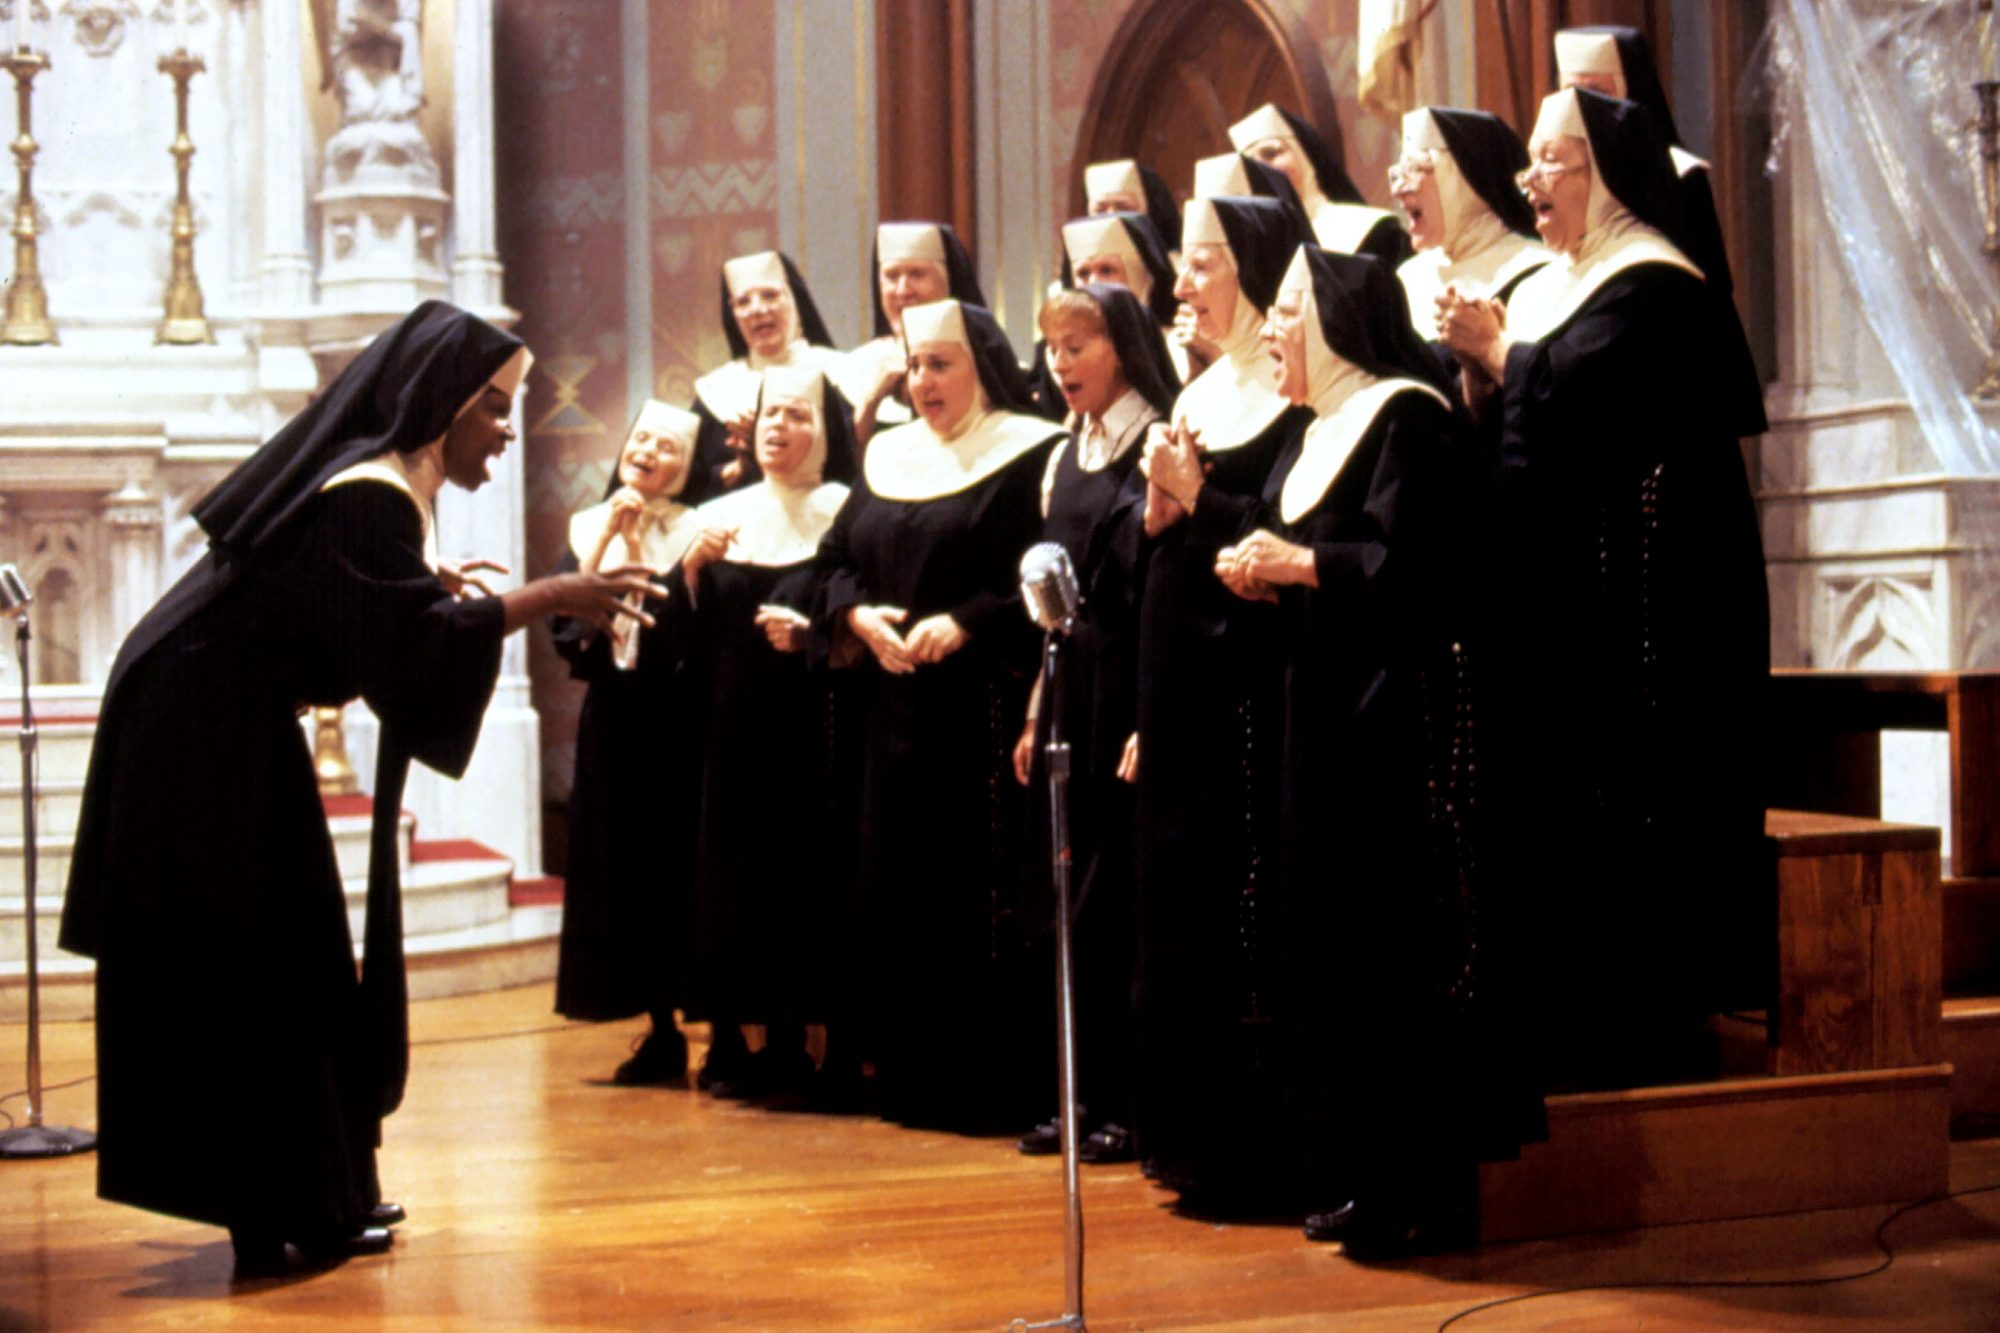 SISTER ACT, Whoopi Goldberg, 1992. (c) Buena Vista Pictures/ Courtesy: Everett Collection.